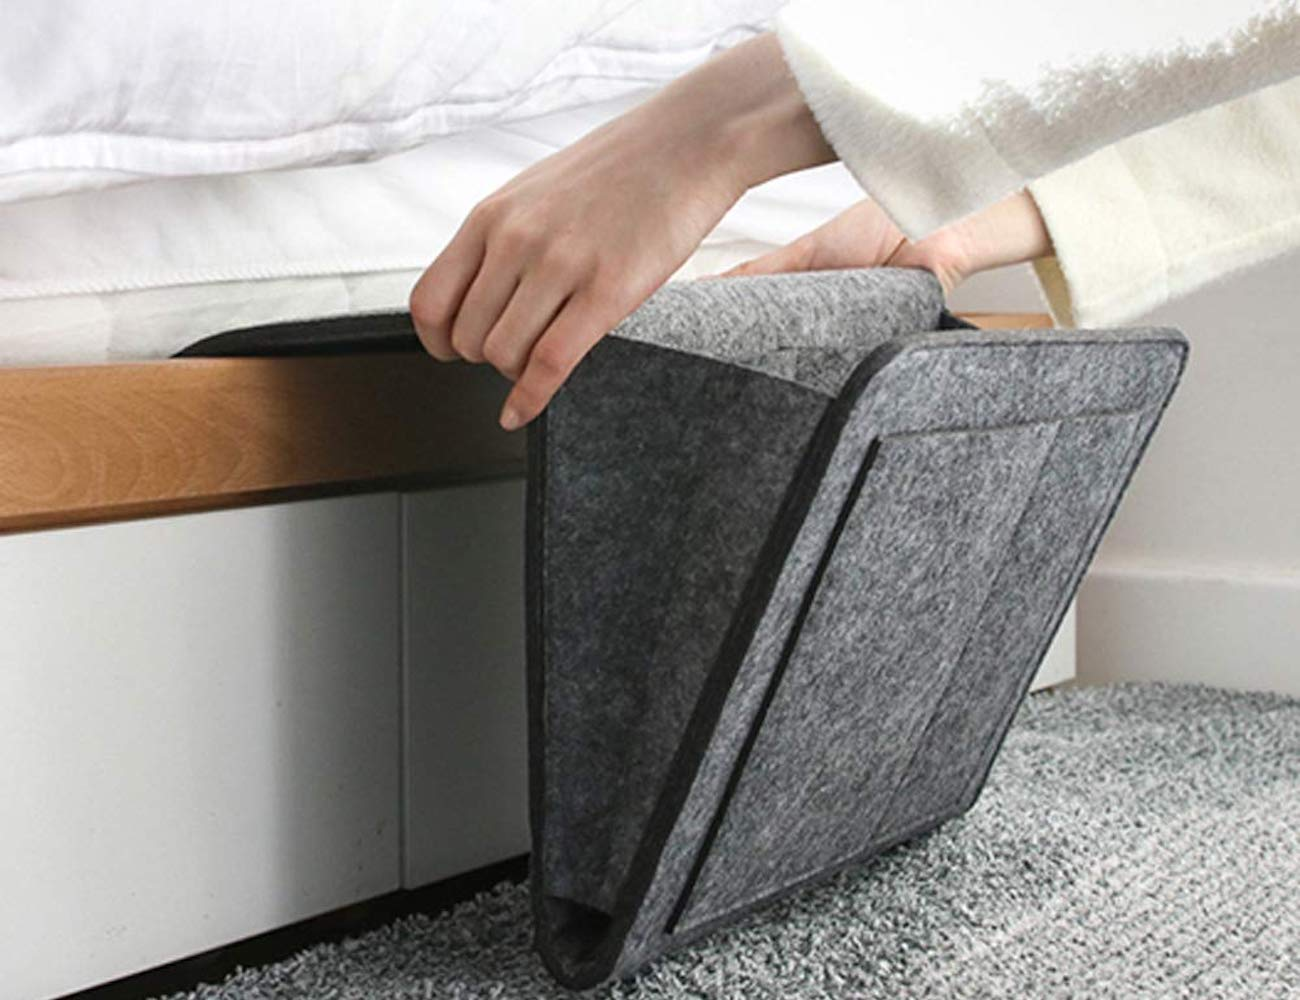 17 Bedside products every modern bedroom needs